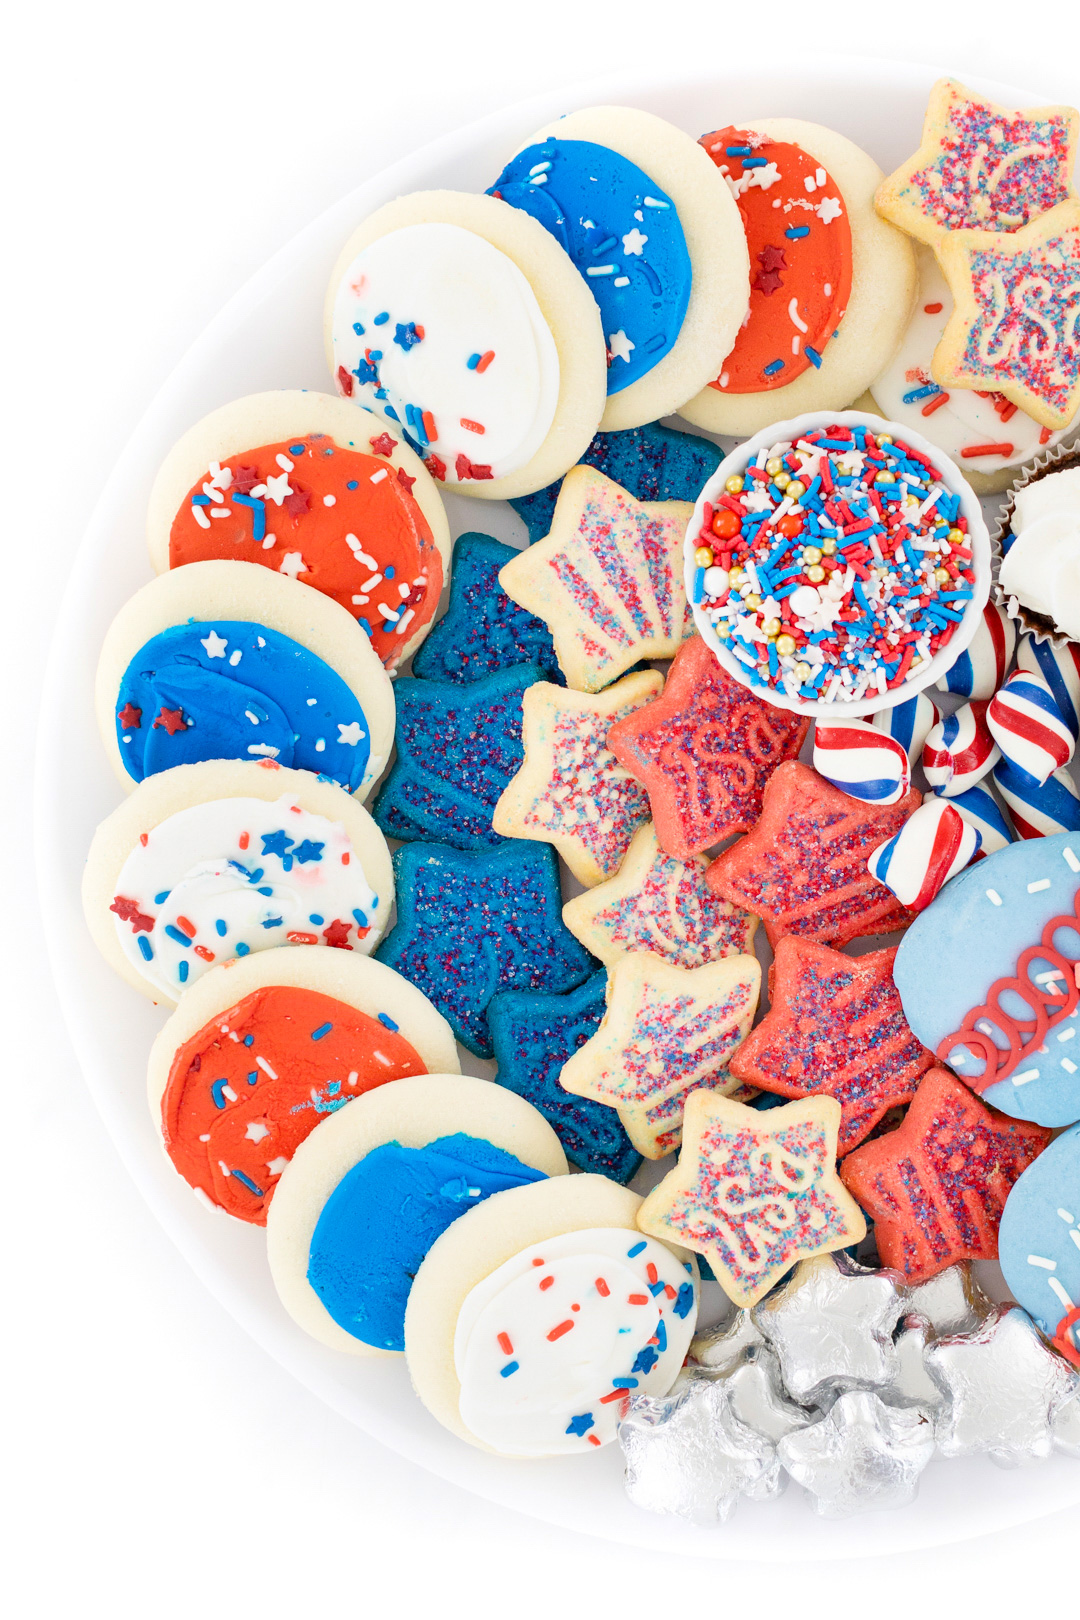 Cookies and treats decorated for patriotic holidays like 4th of july.